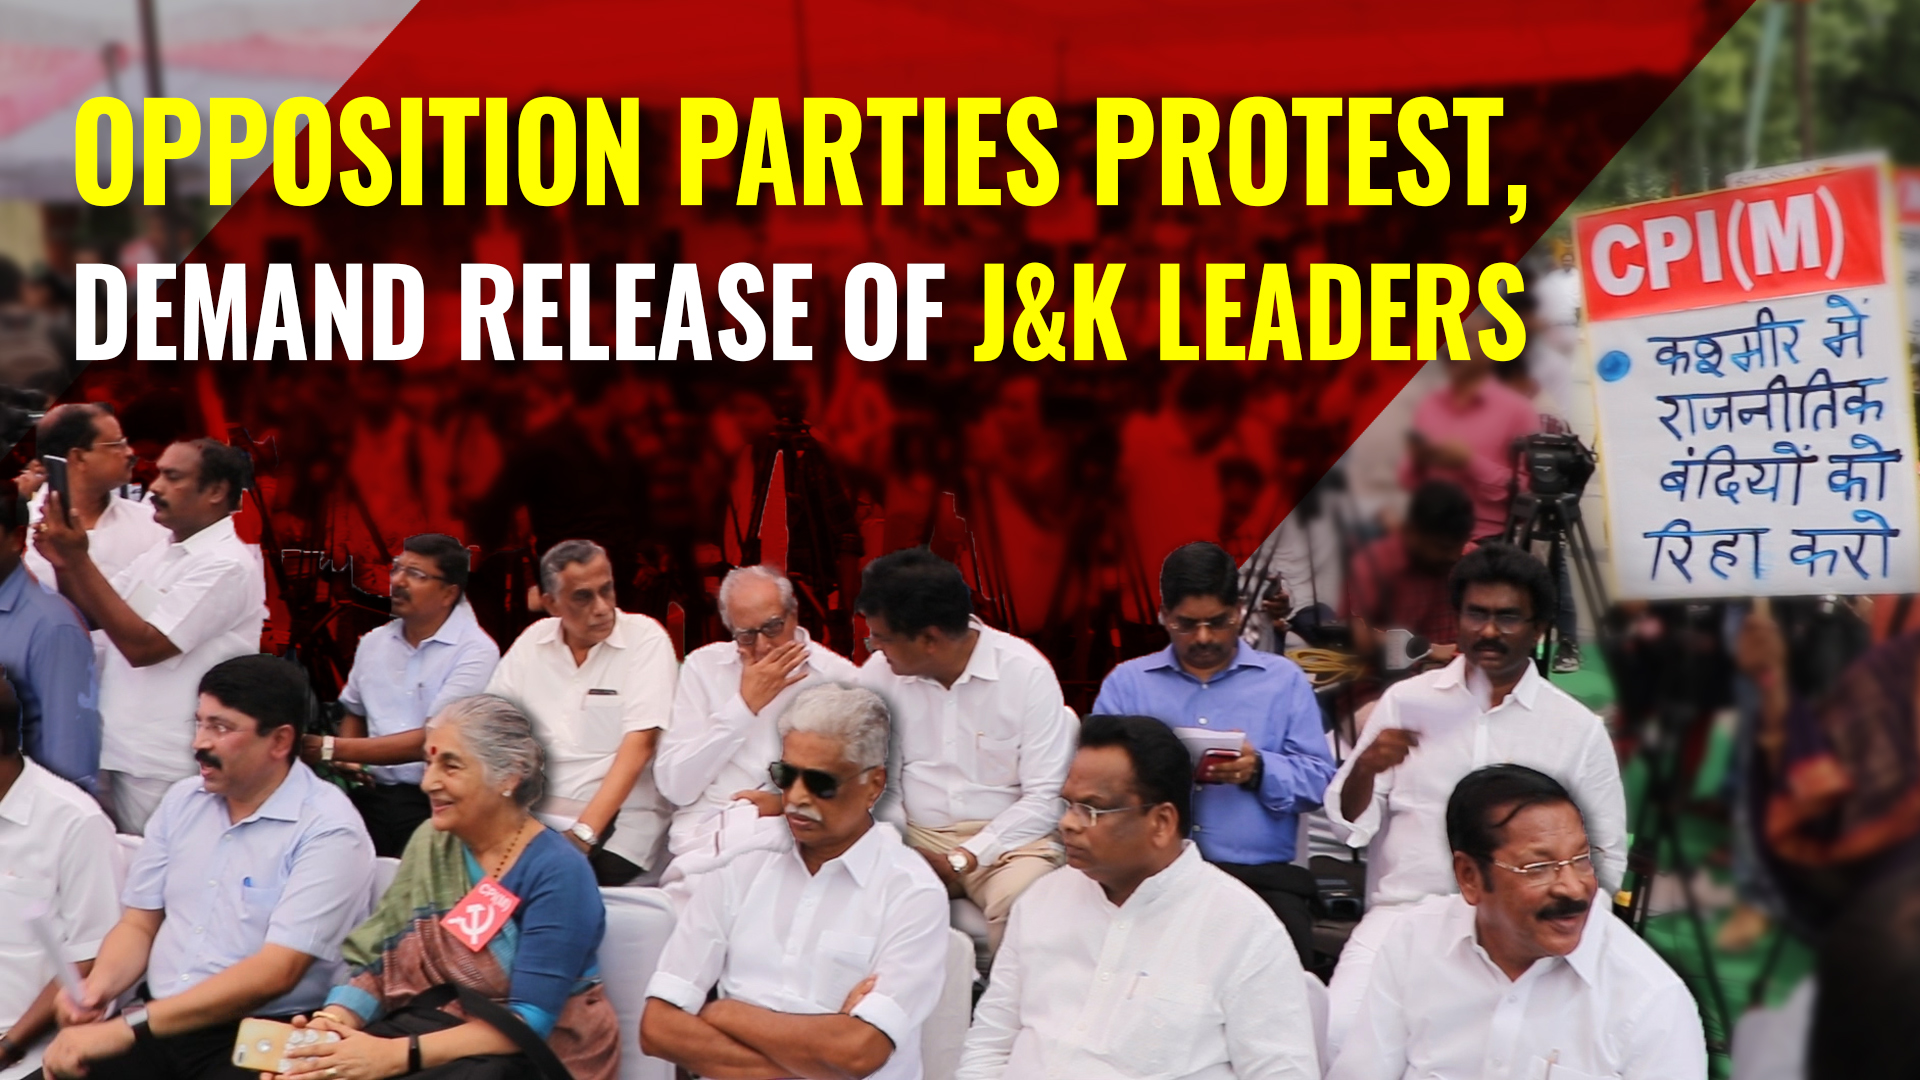 opposition party protest in delhi